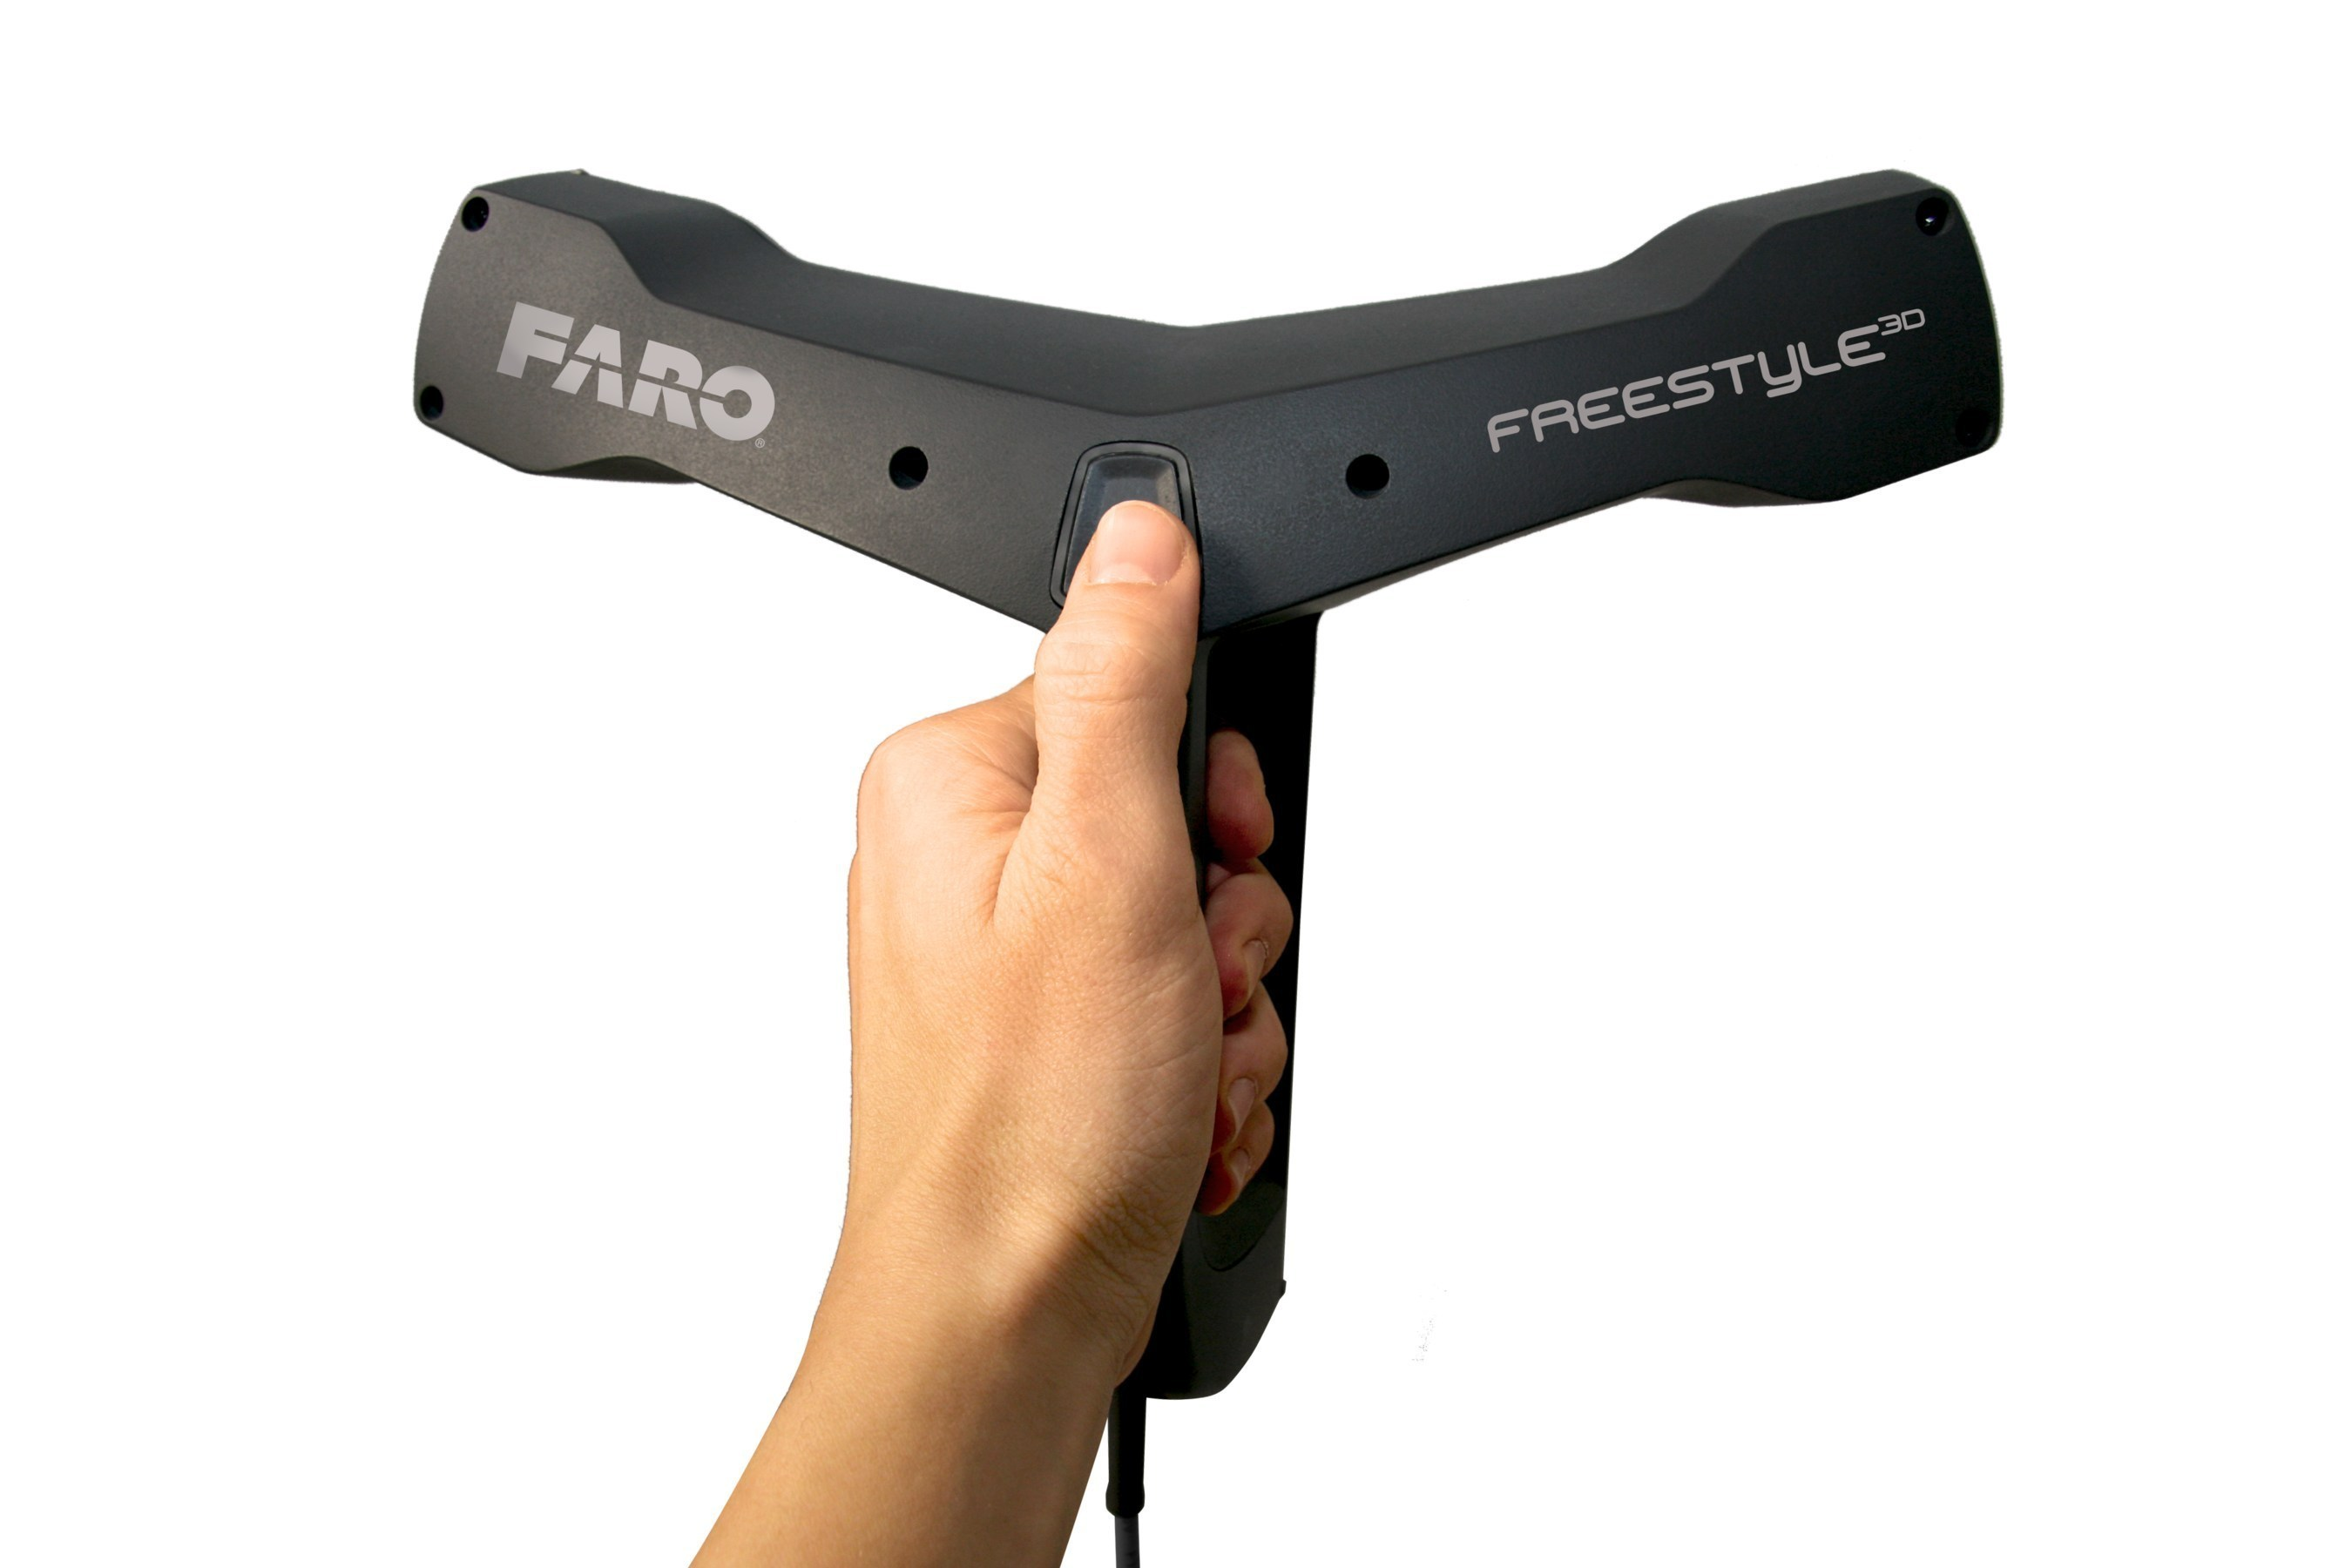 The new FARO Freestyle3D Handheld Laser Scanner is an easy, intuitive device for use in Architecture, ...